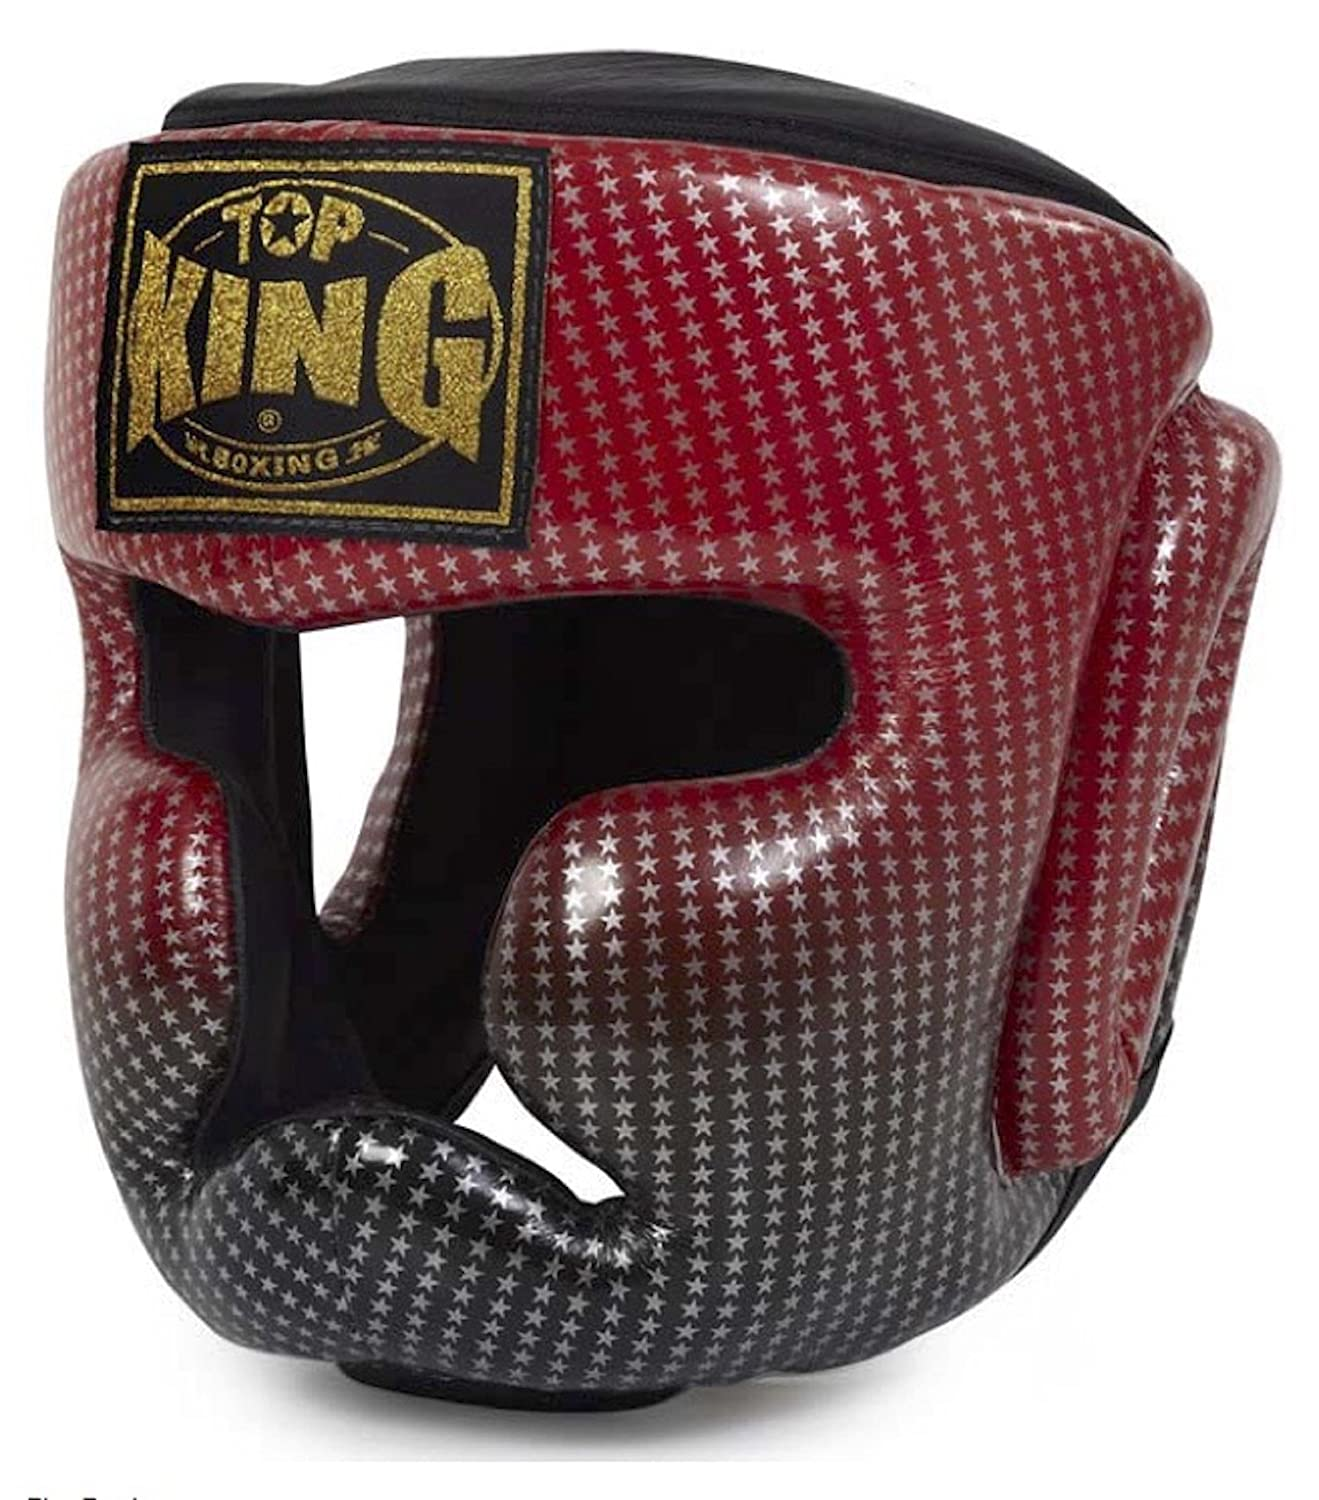 Top King – Professional